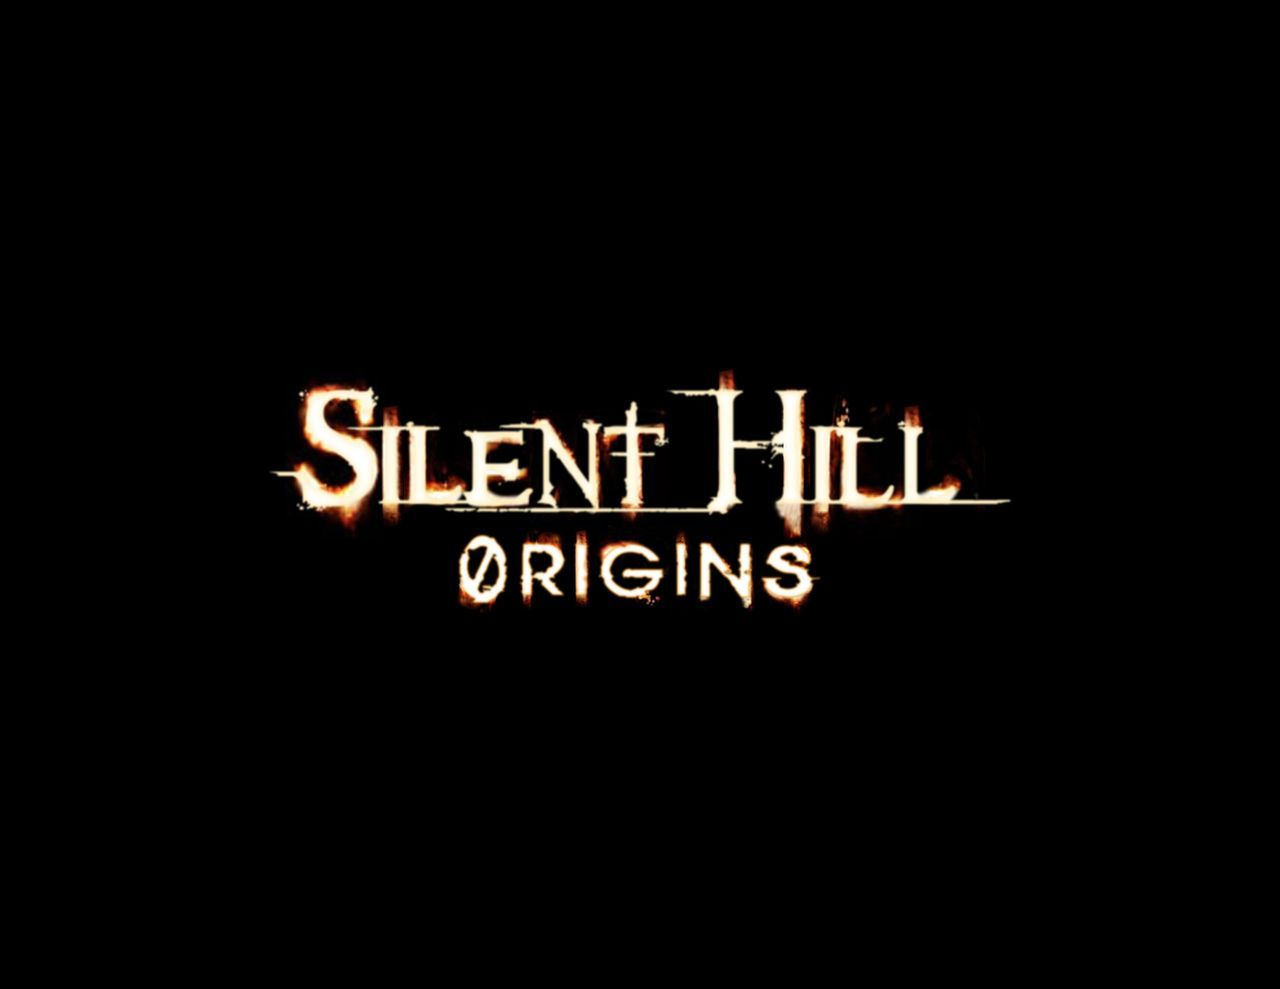 silenthillrevelation:  Next Silent Hill Movie 'Silent Hill Origins' Travis Grady